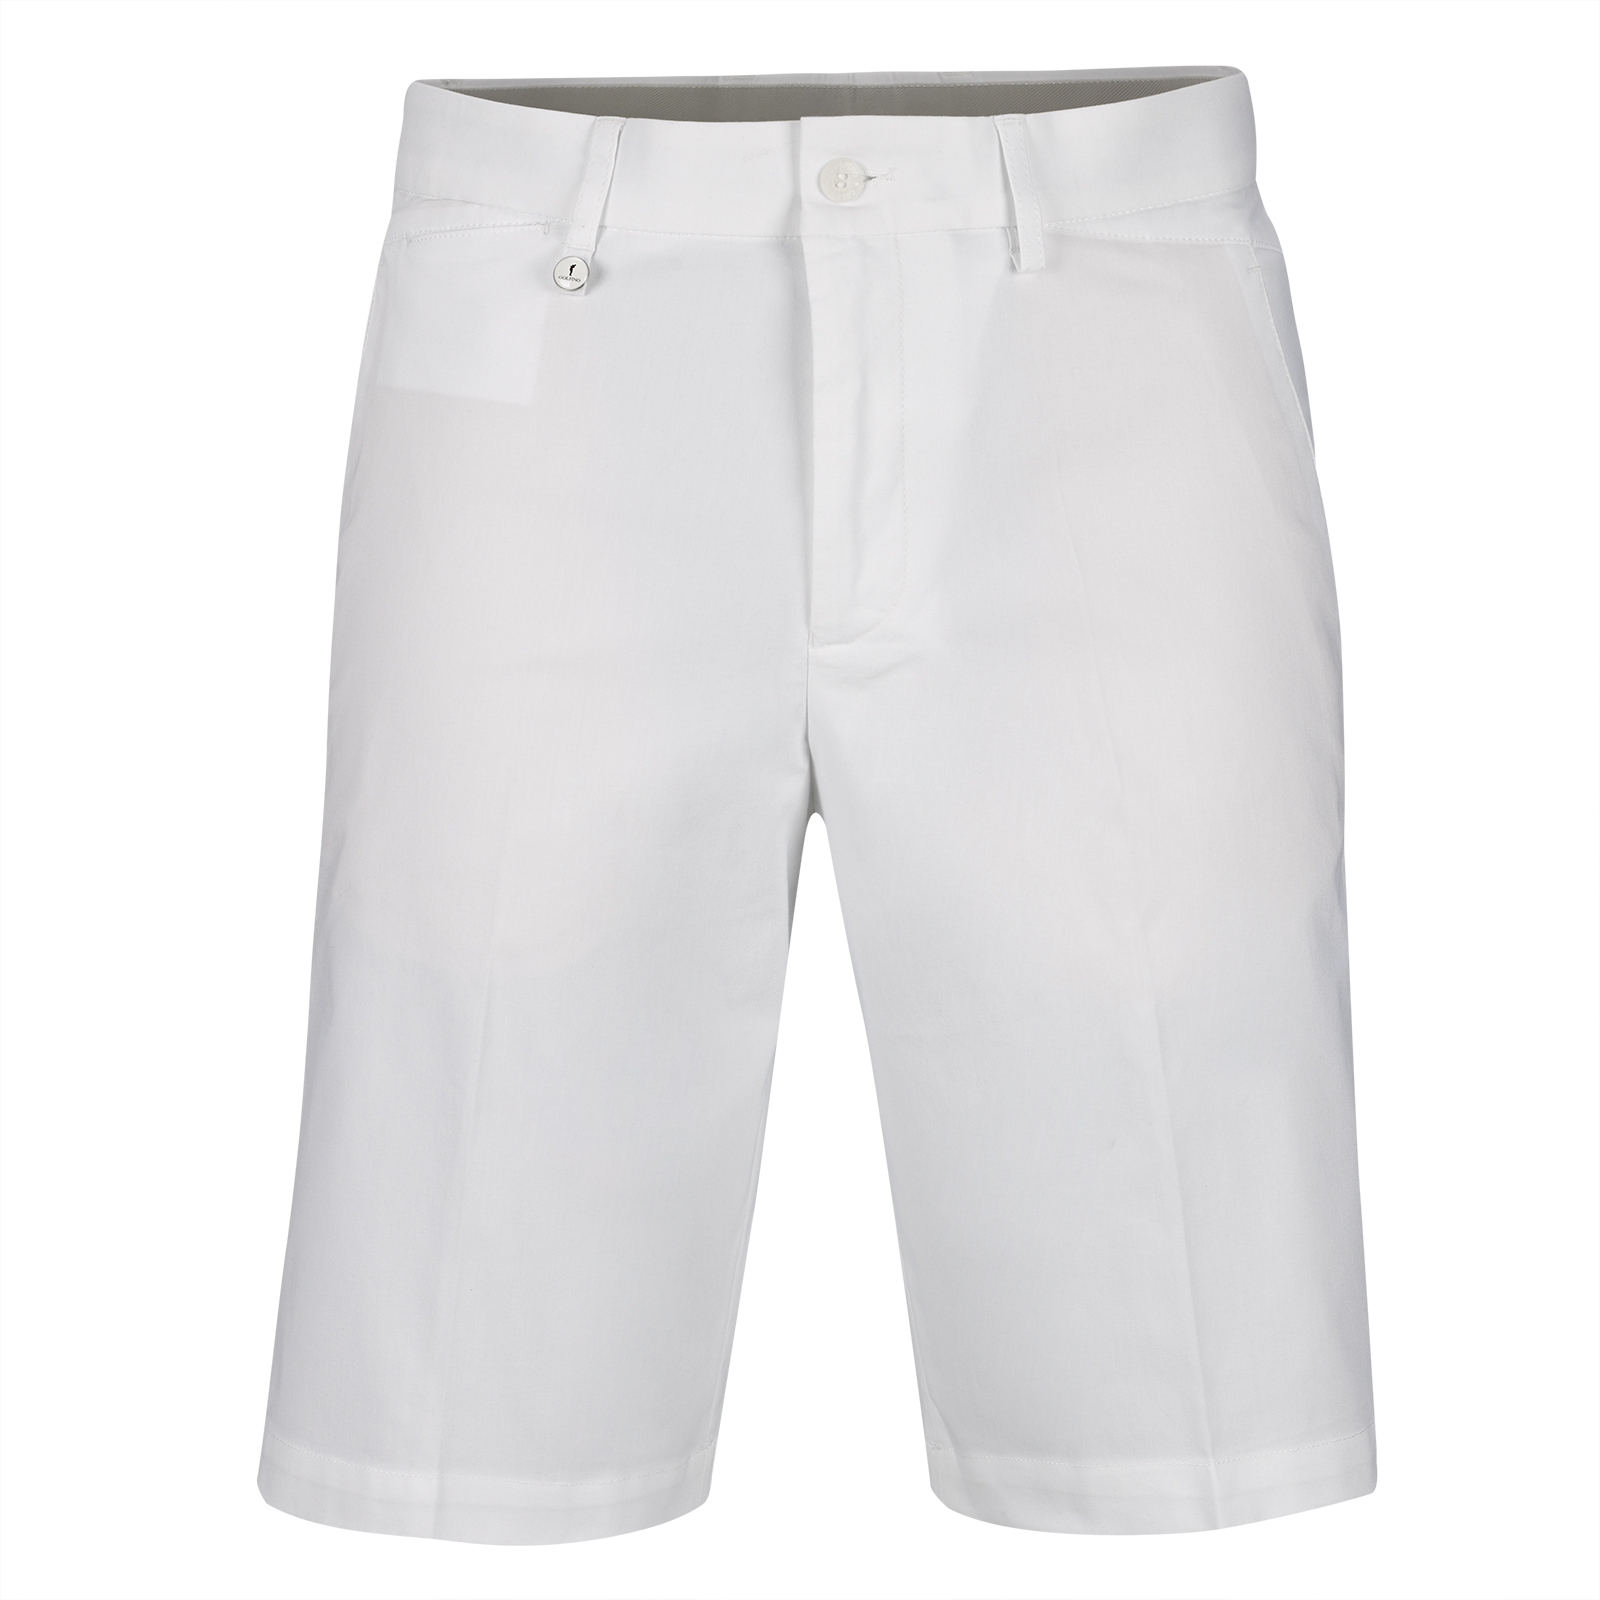 Men's techno stretch golf short with moisture management